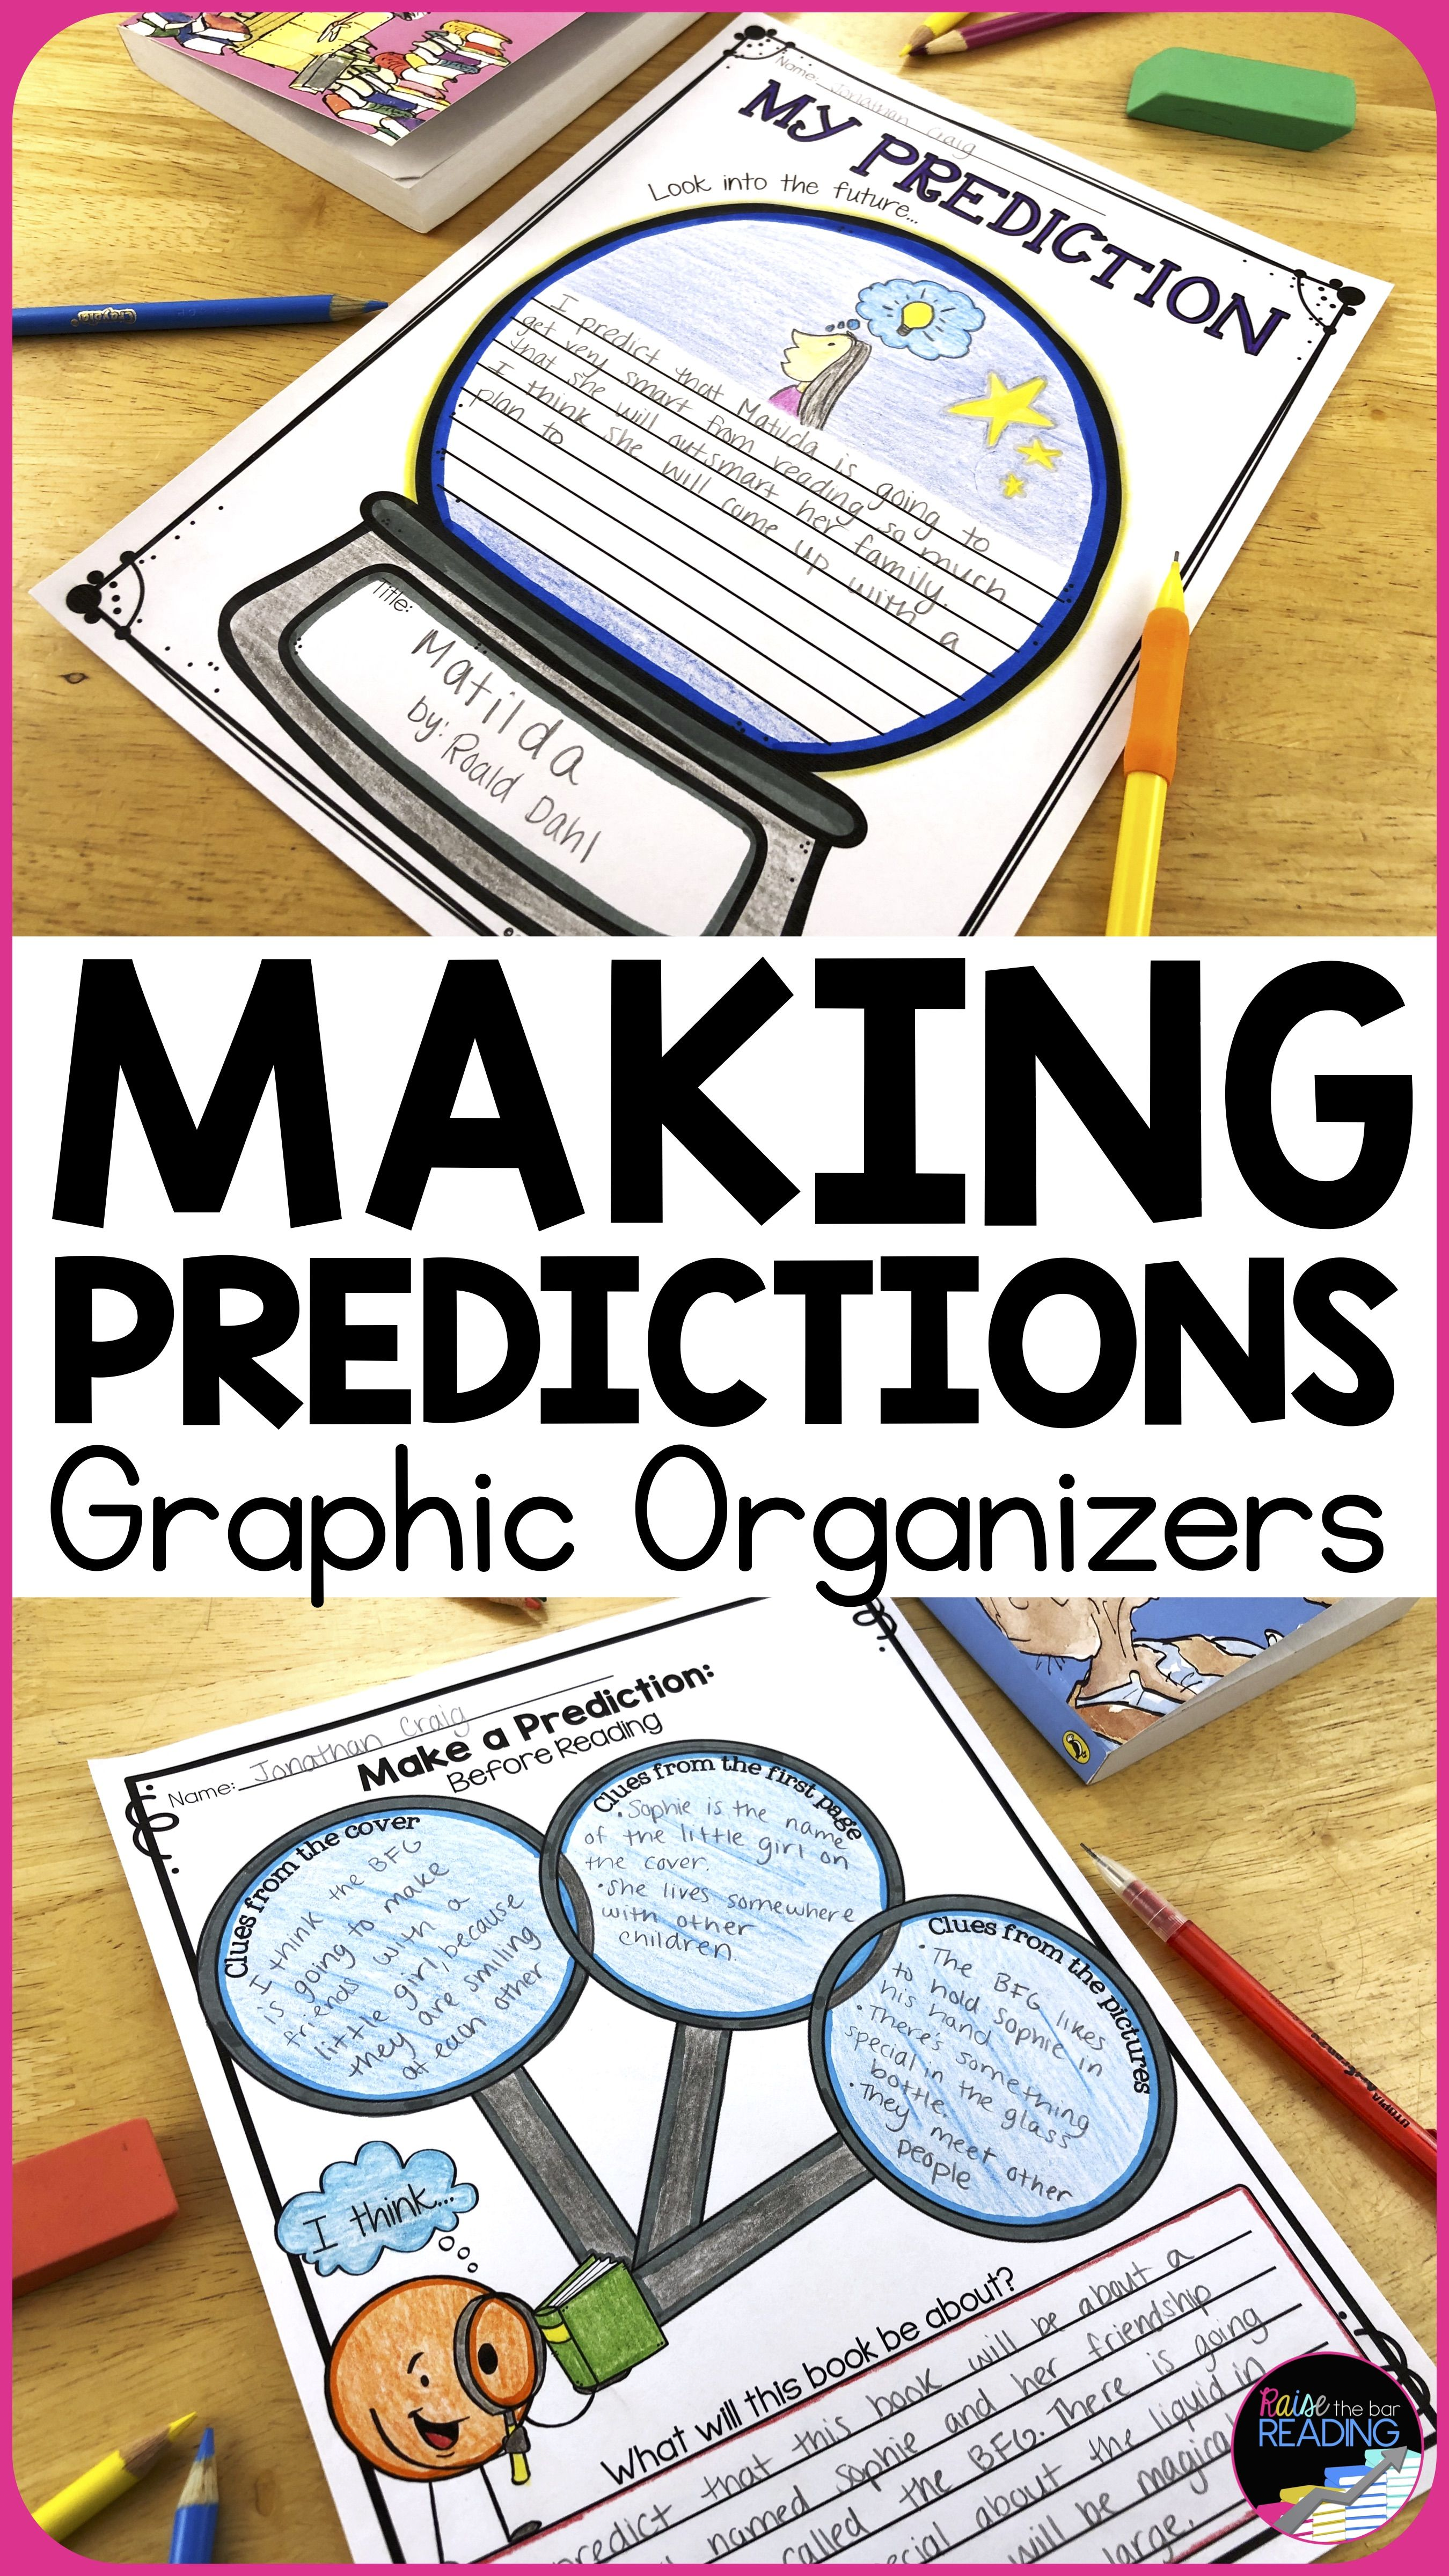 Making Predictions Worksheets Paper And Digital Reading Graphic Organizers Graphic Organizers Reading Graphic Organizers Predicting Activities [ 4800 x 2700 Pixel ]